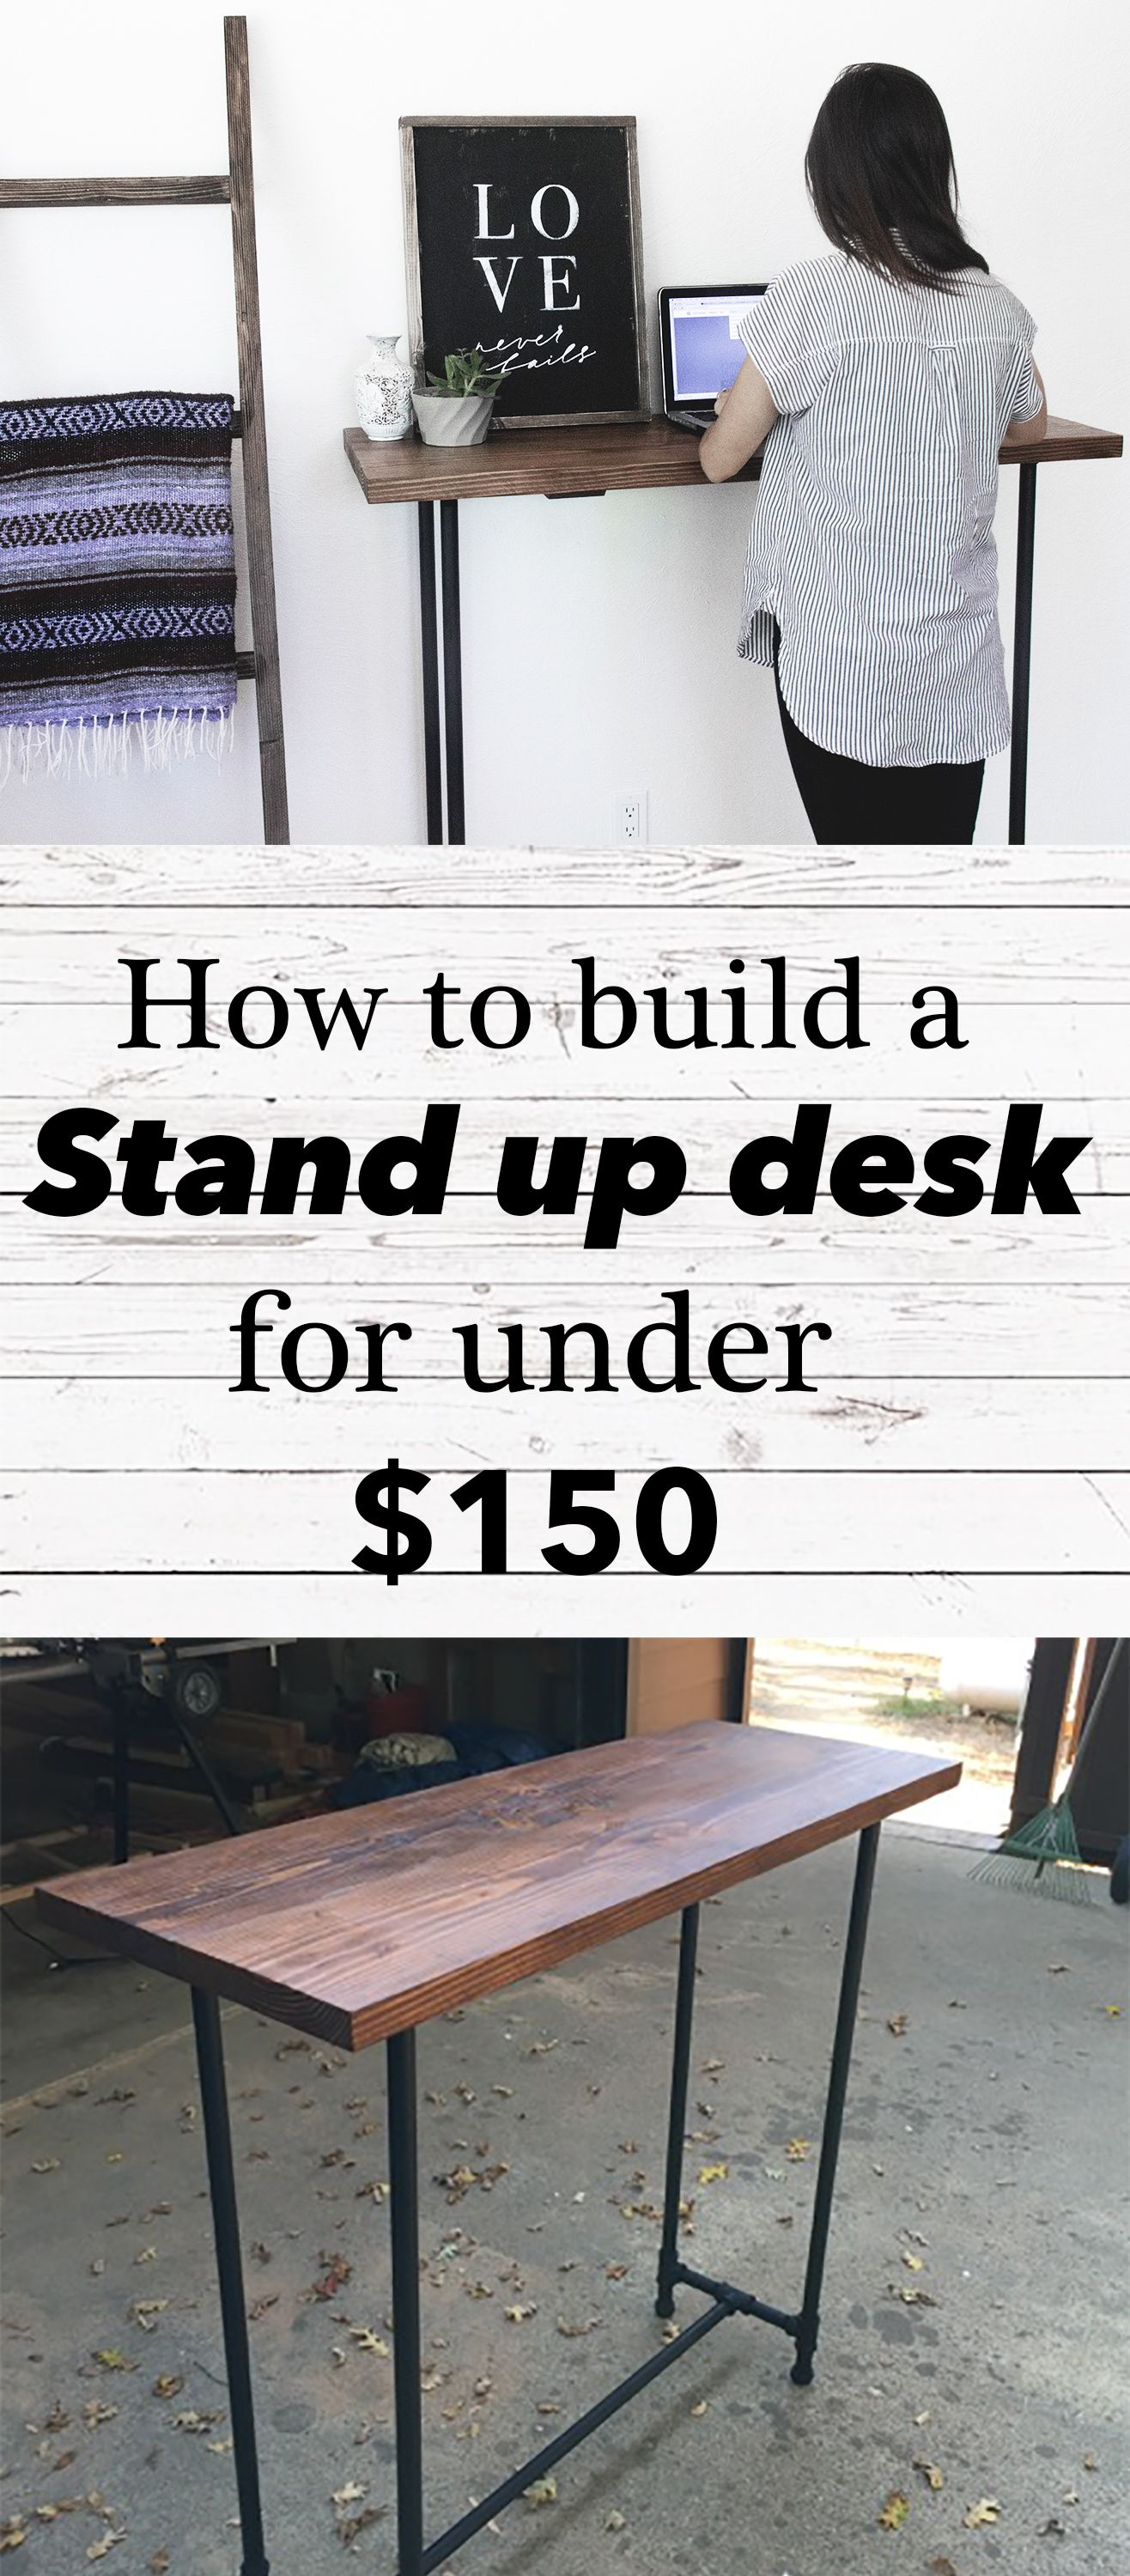 EASY DIY PIPE STAND UP DESK COST